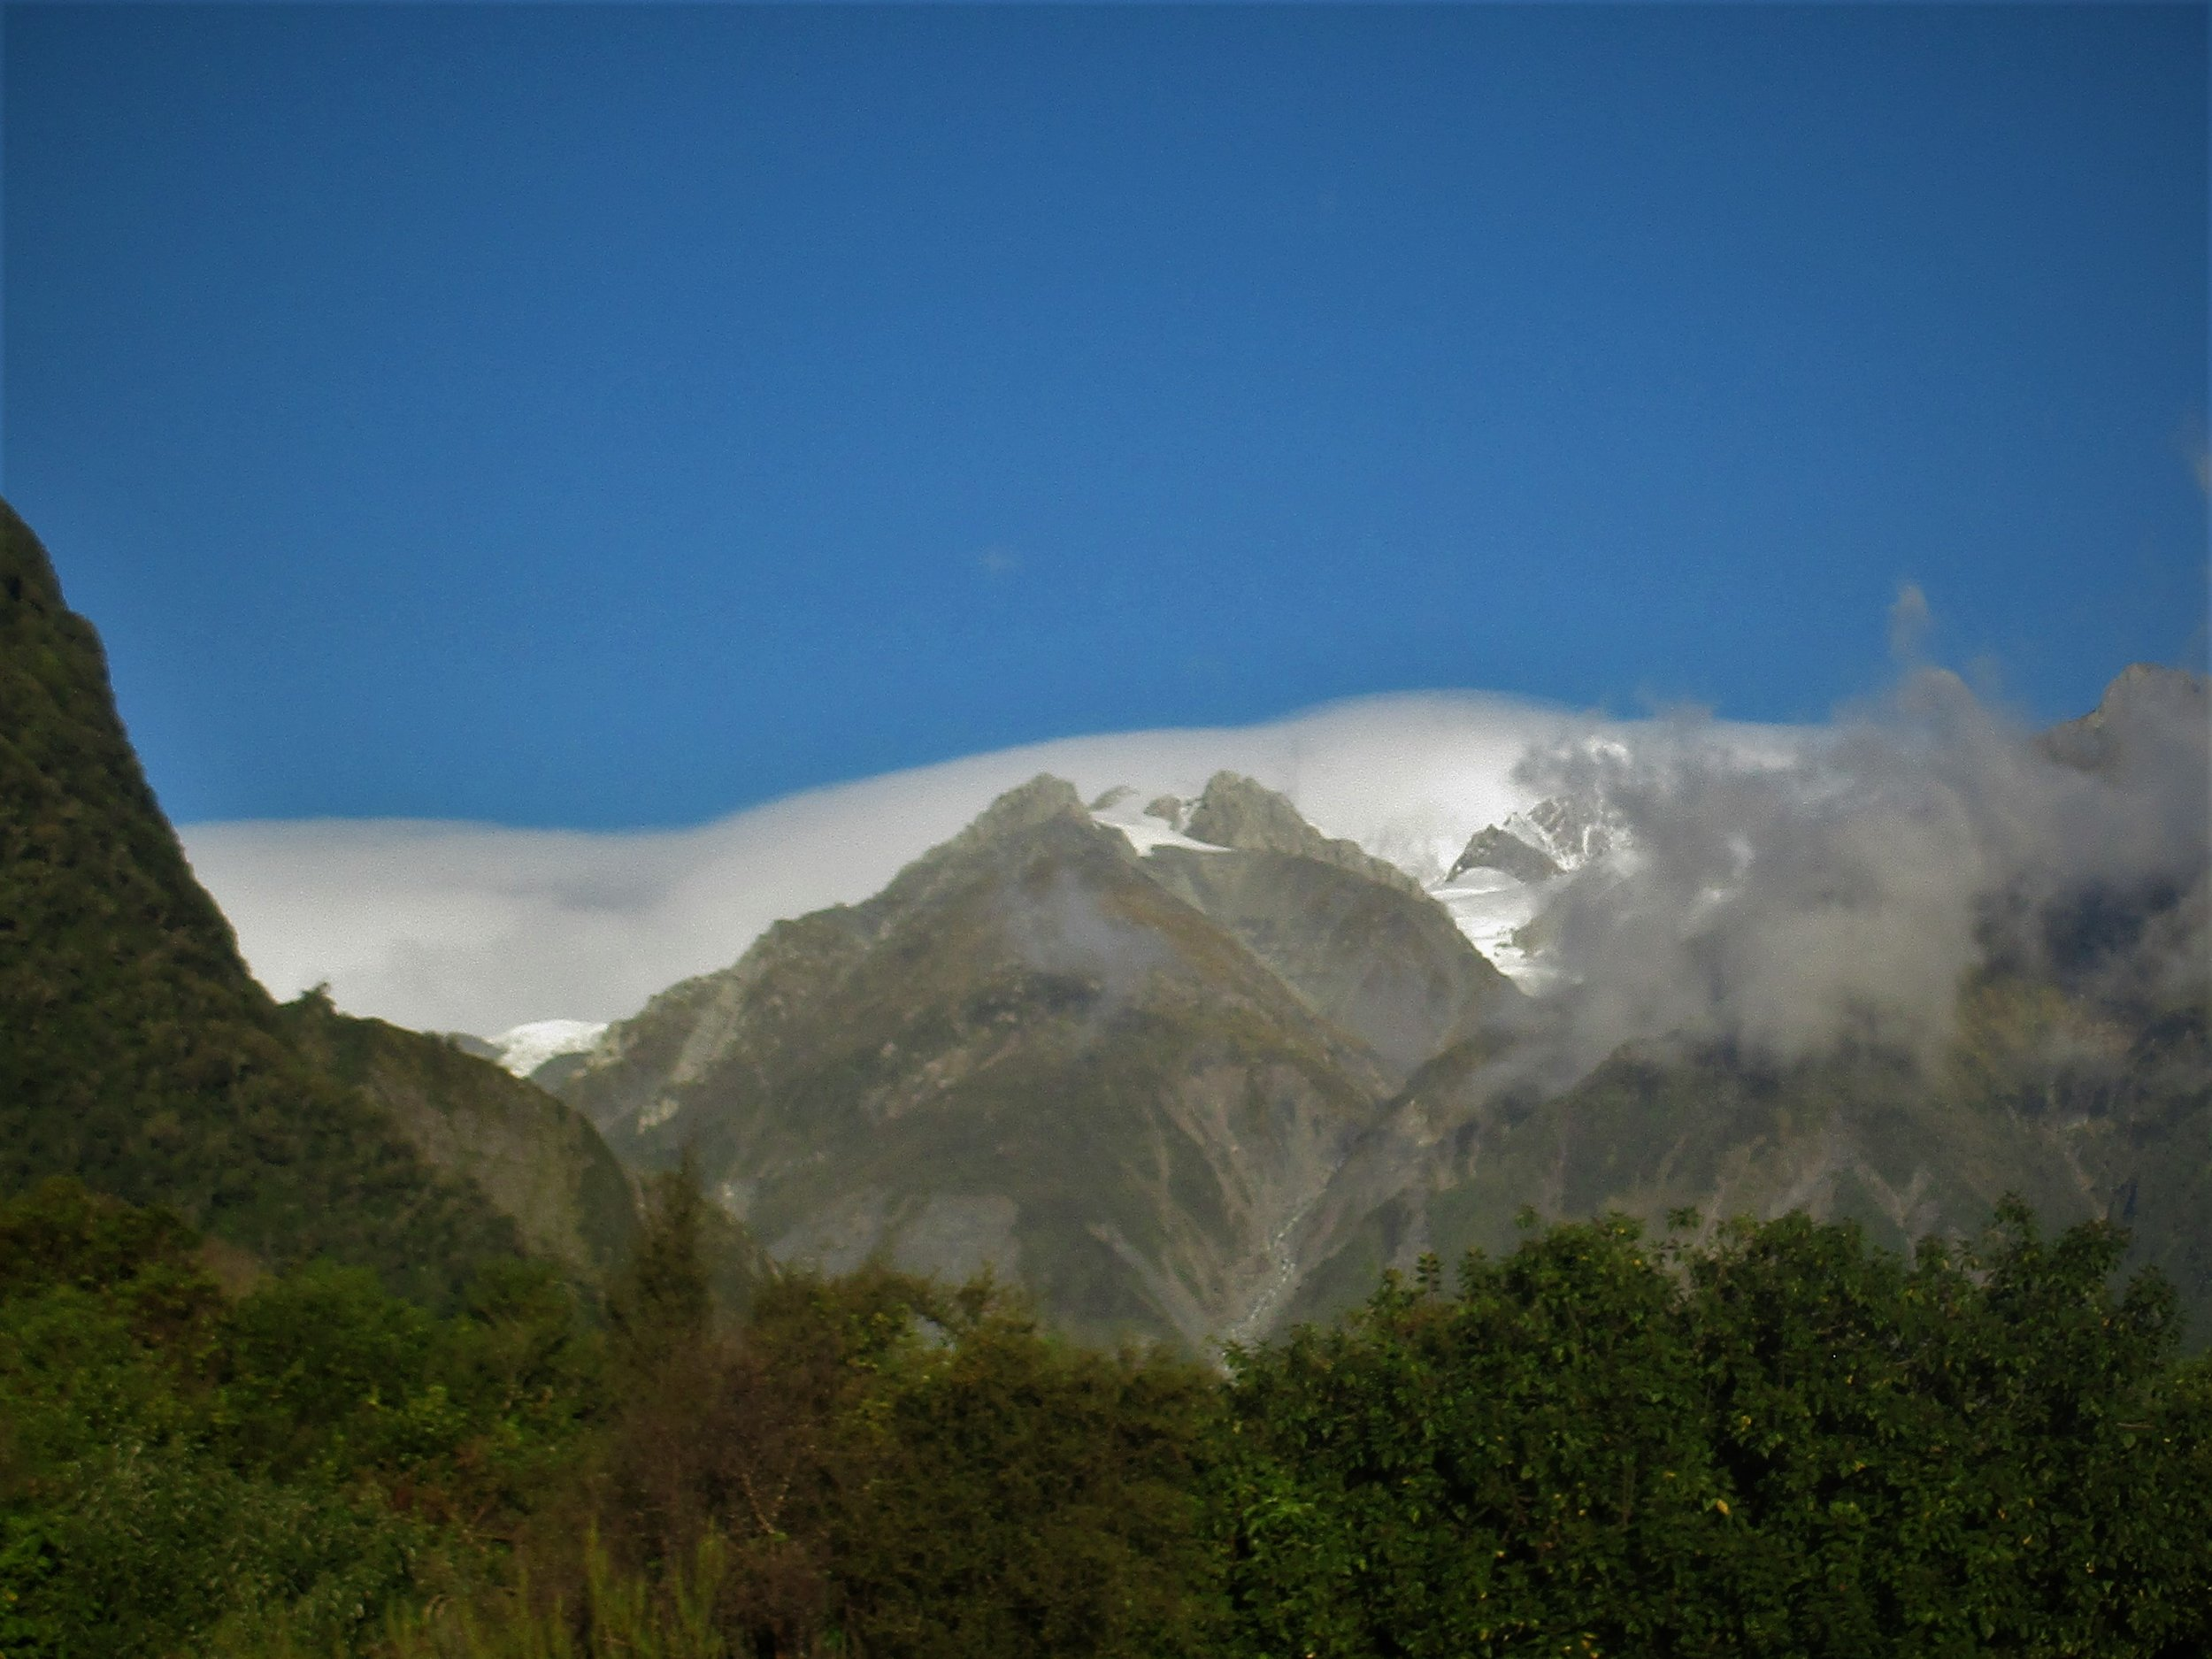 The Southern alps from the West Coast